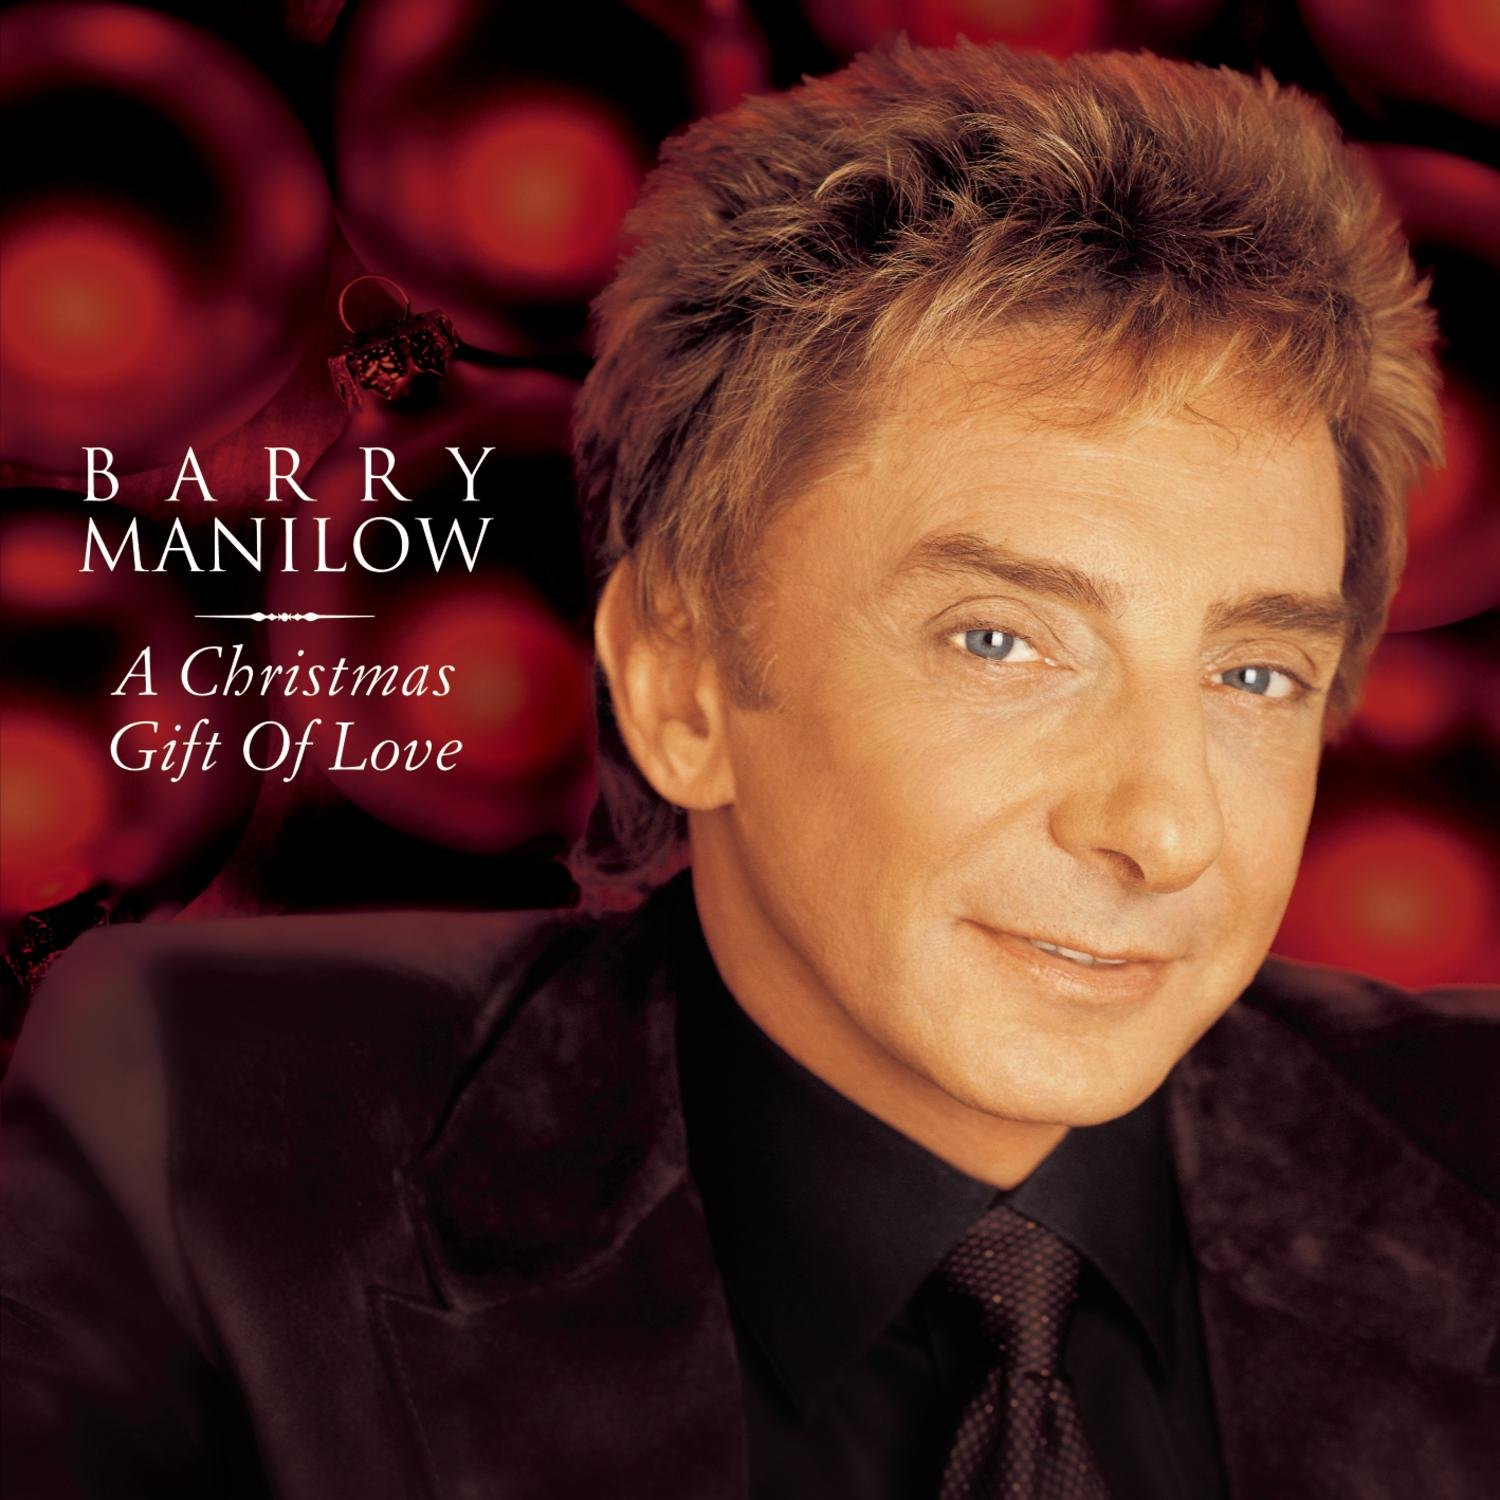 Barry Manilow - A Christmas Gift of Love - Amazon.com Music